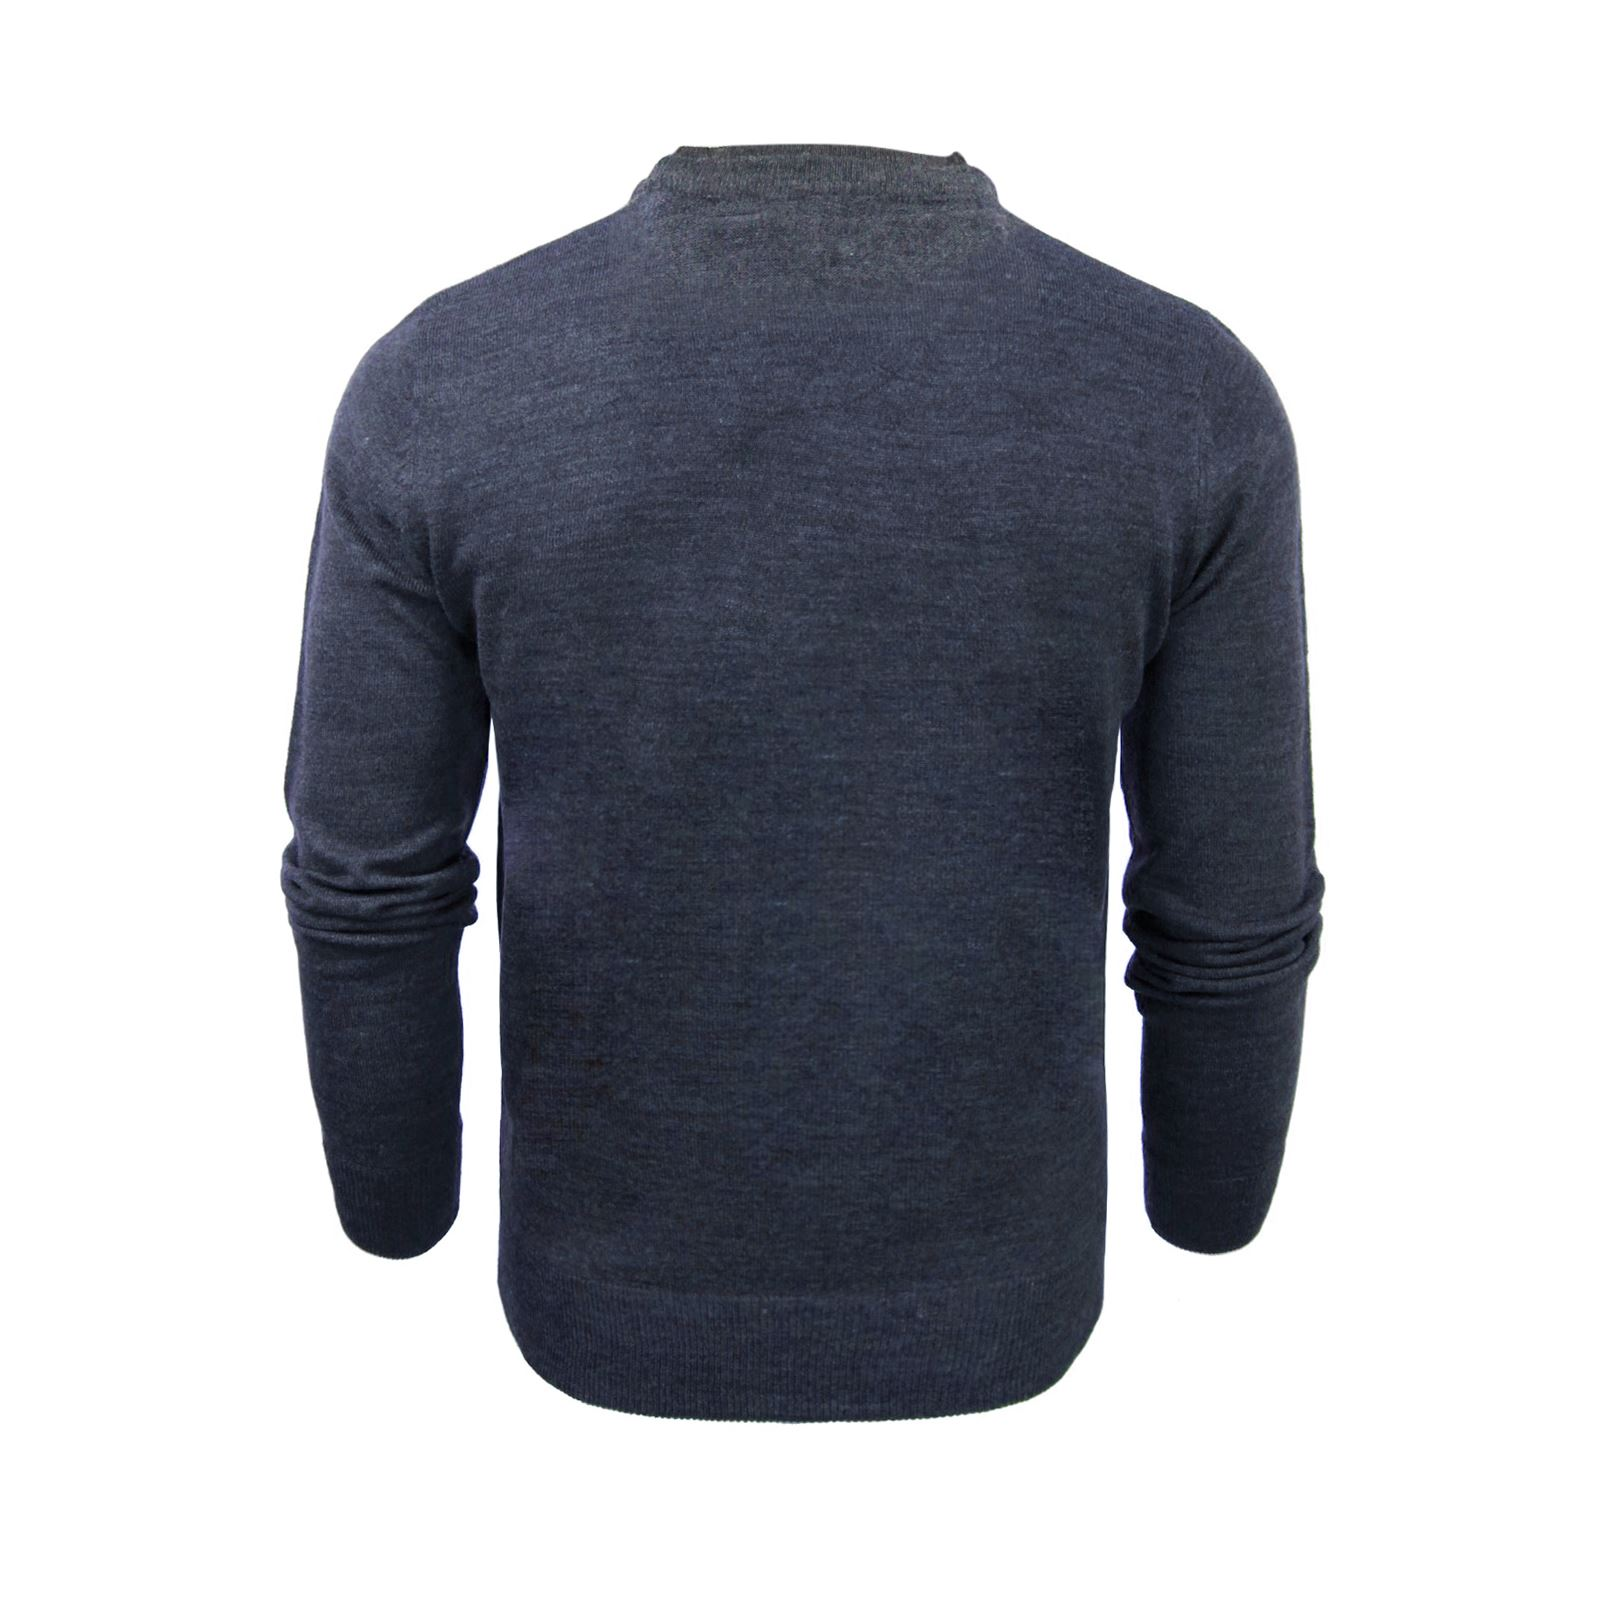 Mens-Jumper-Brave-Soul-Knitted-Sweater-In-Various-Styles thumbnail 5